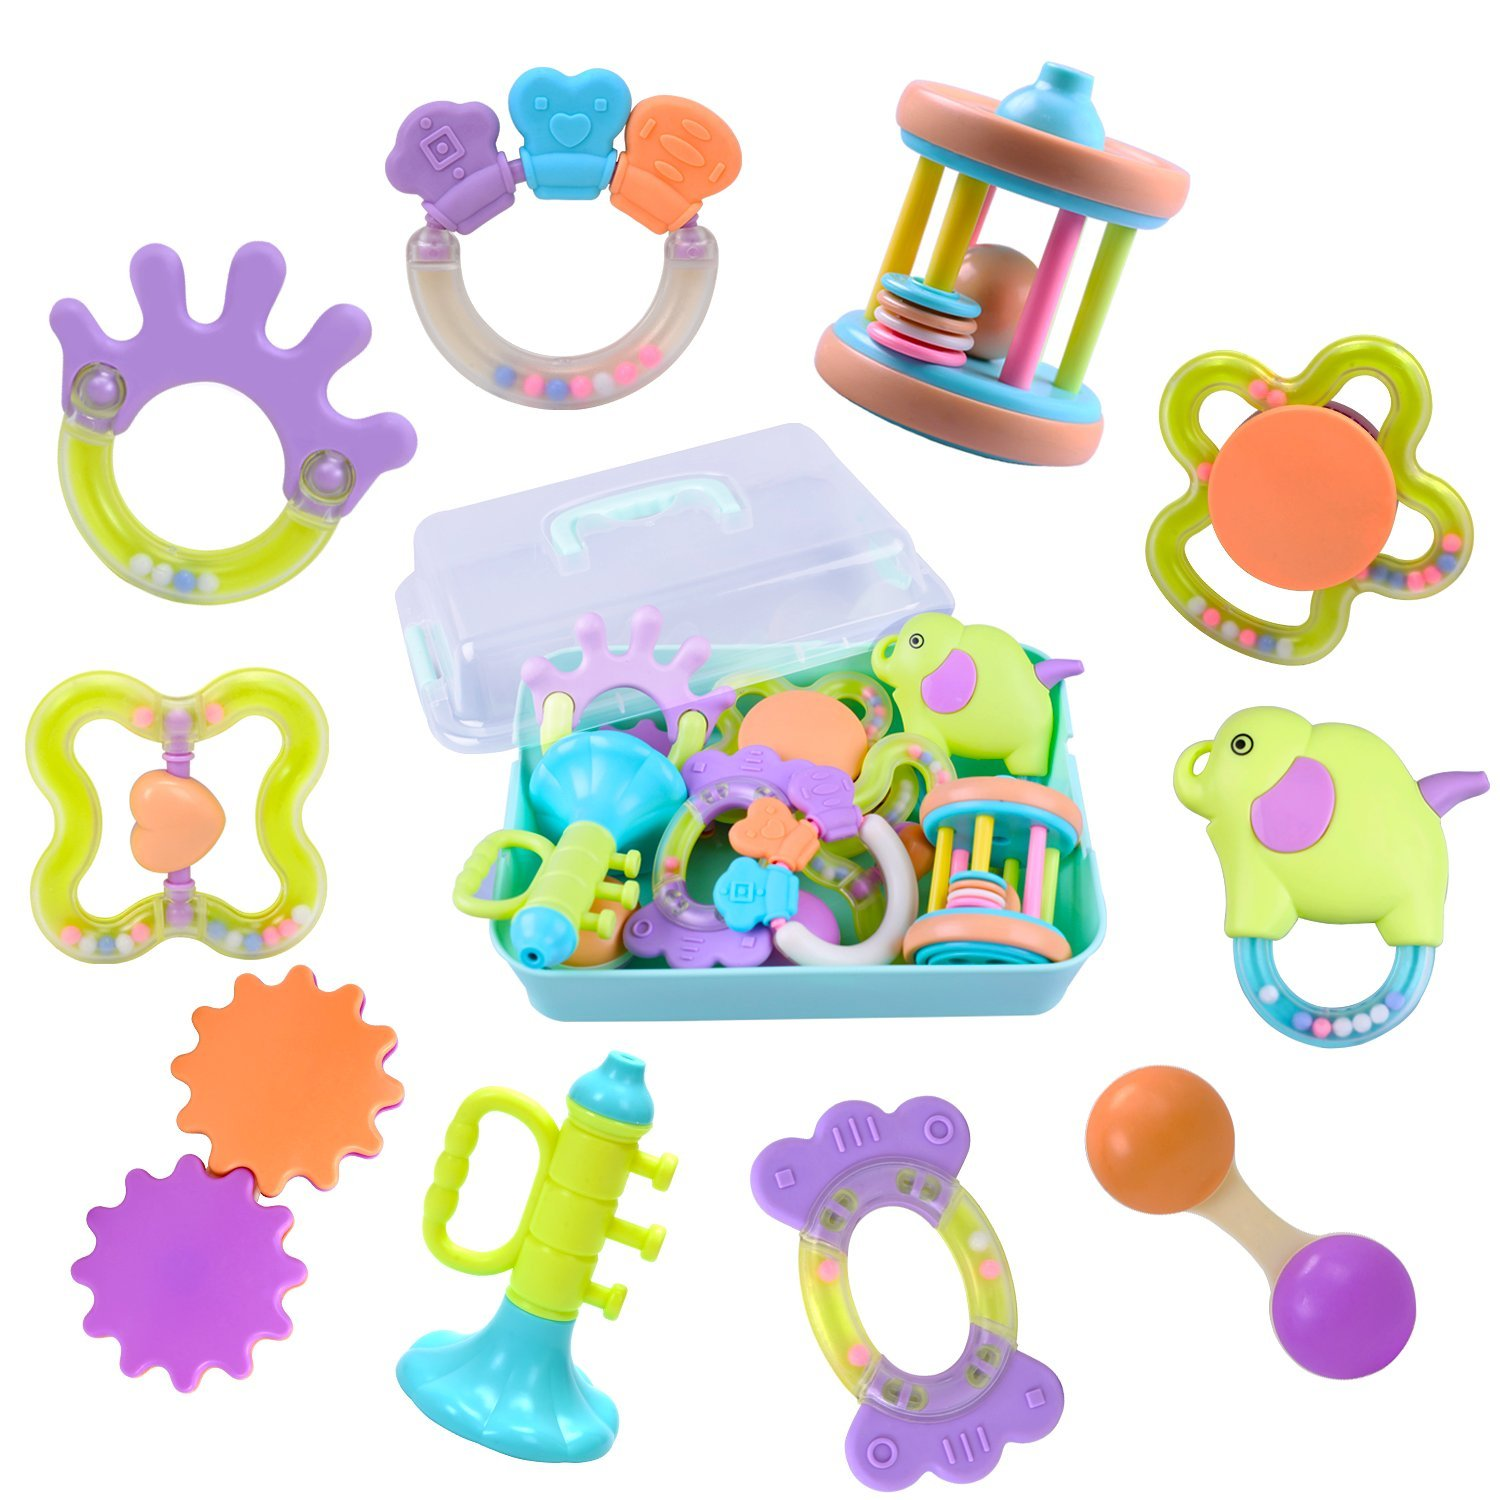 10 Baby Rattles, Infants Teething Toys, Babies Teether, Ball Shaker, Grab, Spin Rattle, Musical Sounds Play Gift Set for 1, 2, 3, 4, 5, 6, 7, 8, 9, 11, 12, 18 Month Year Olds Newborn, Boy, Girl, Kids iPlay iLearn